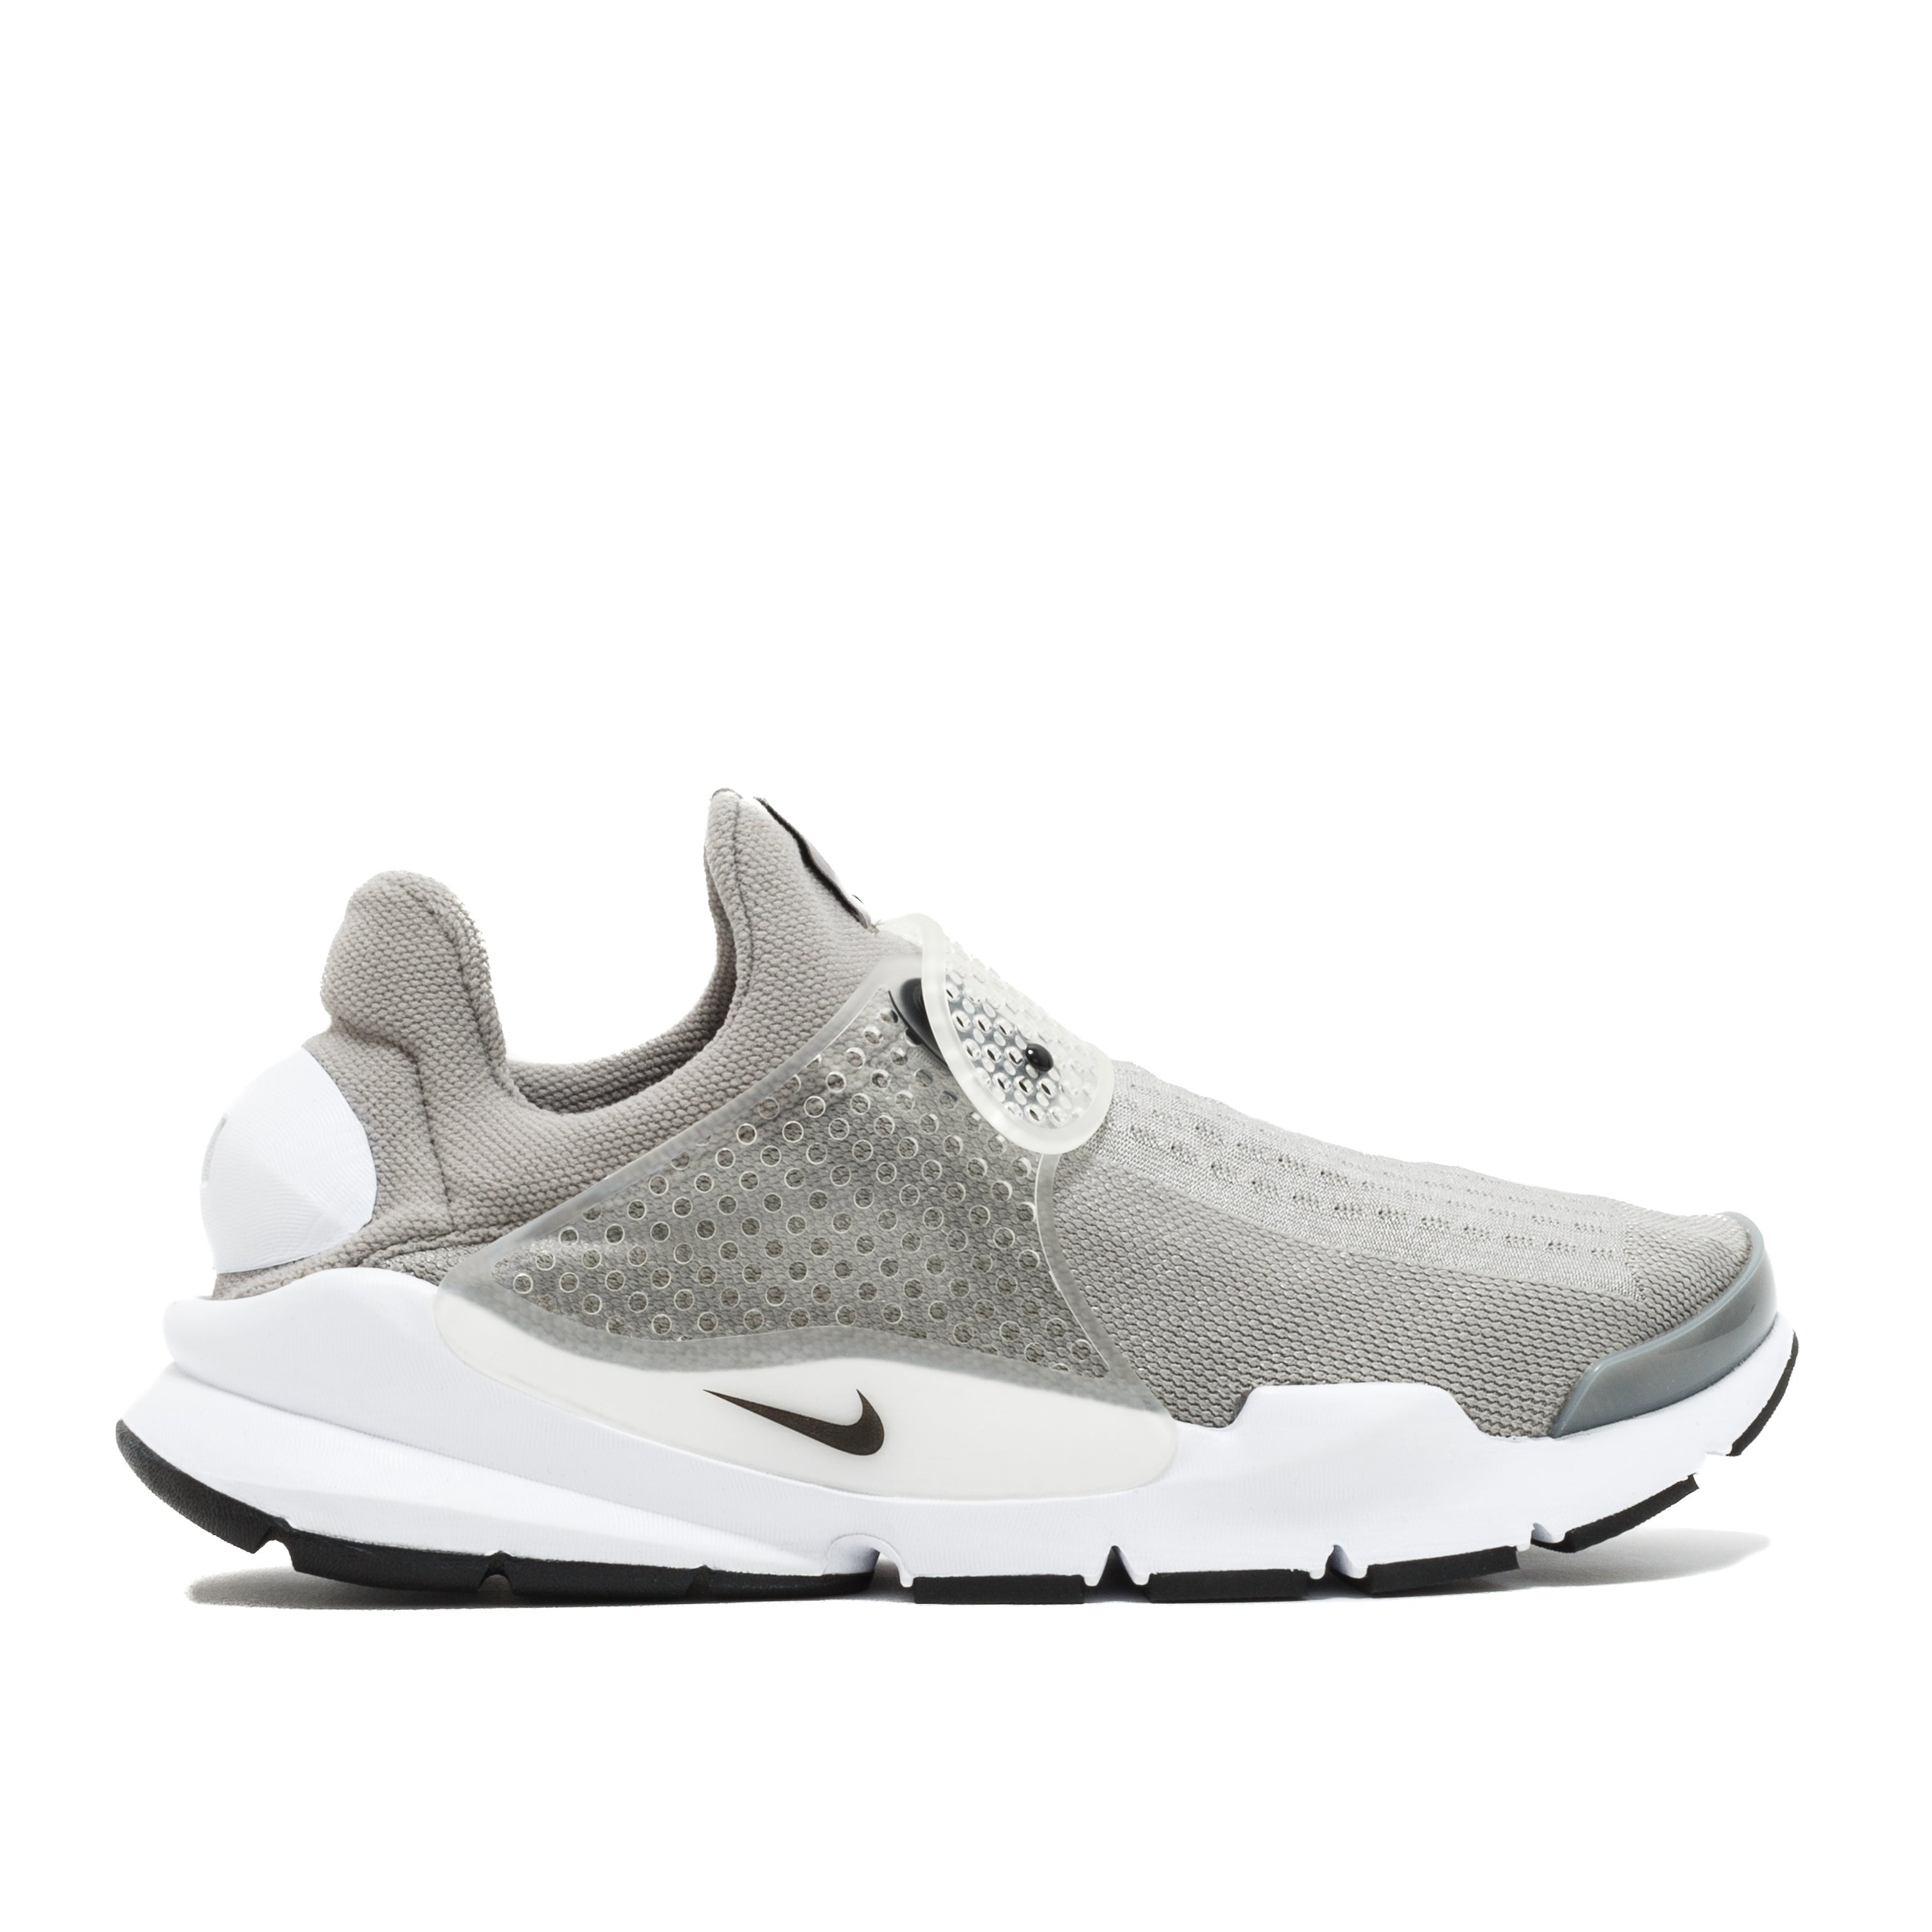 purchase cheap 13475 5d24e Shop Nike Mens Nike Sock Dart KJCRD Low Top Running Sneaker - Free Shipping  Today - Overstock - 25893547